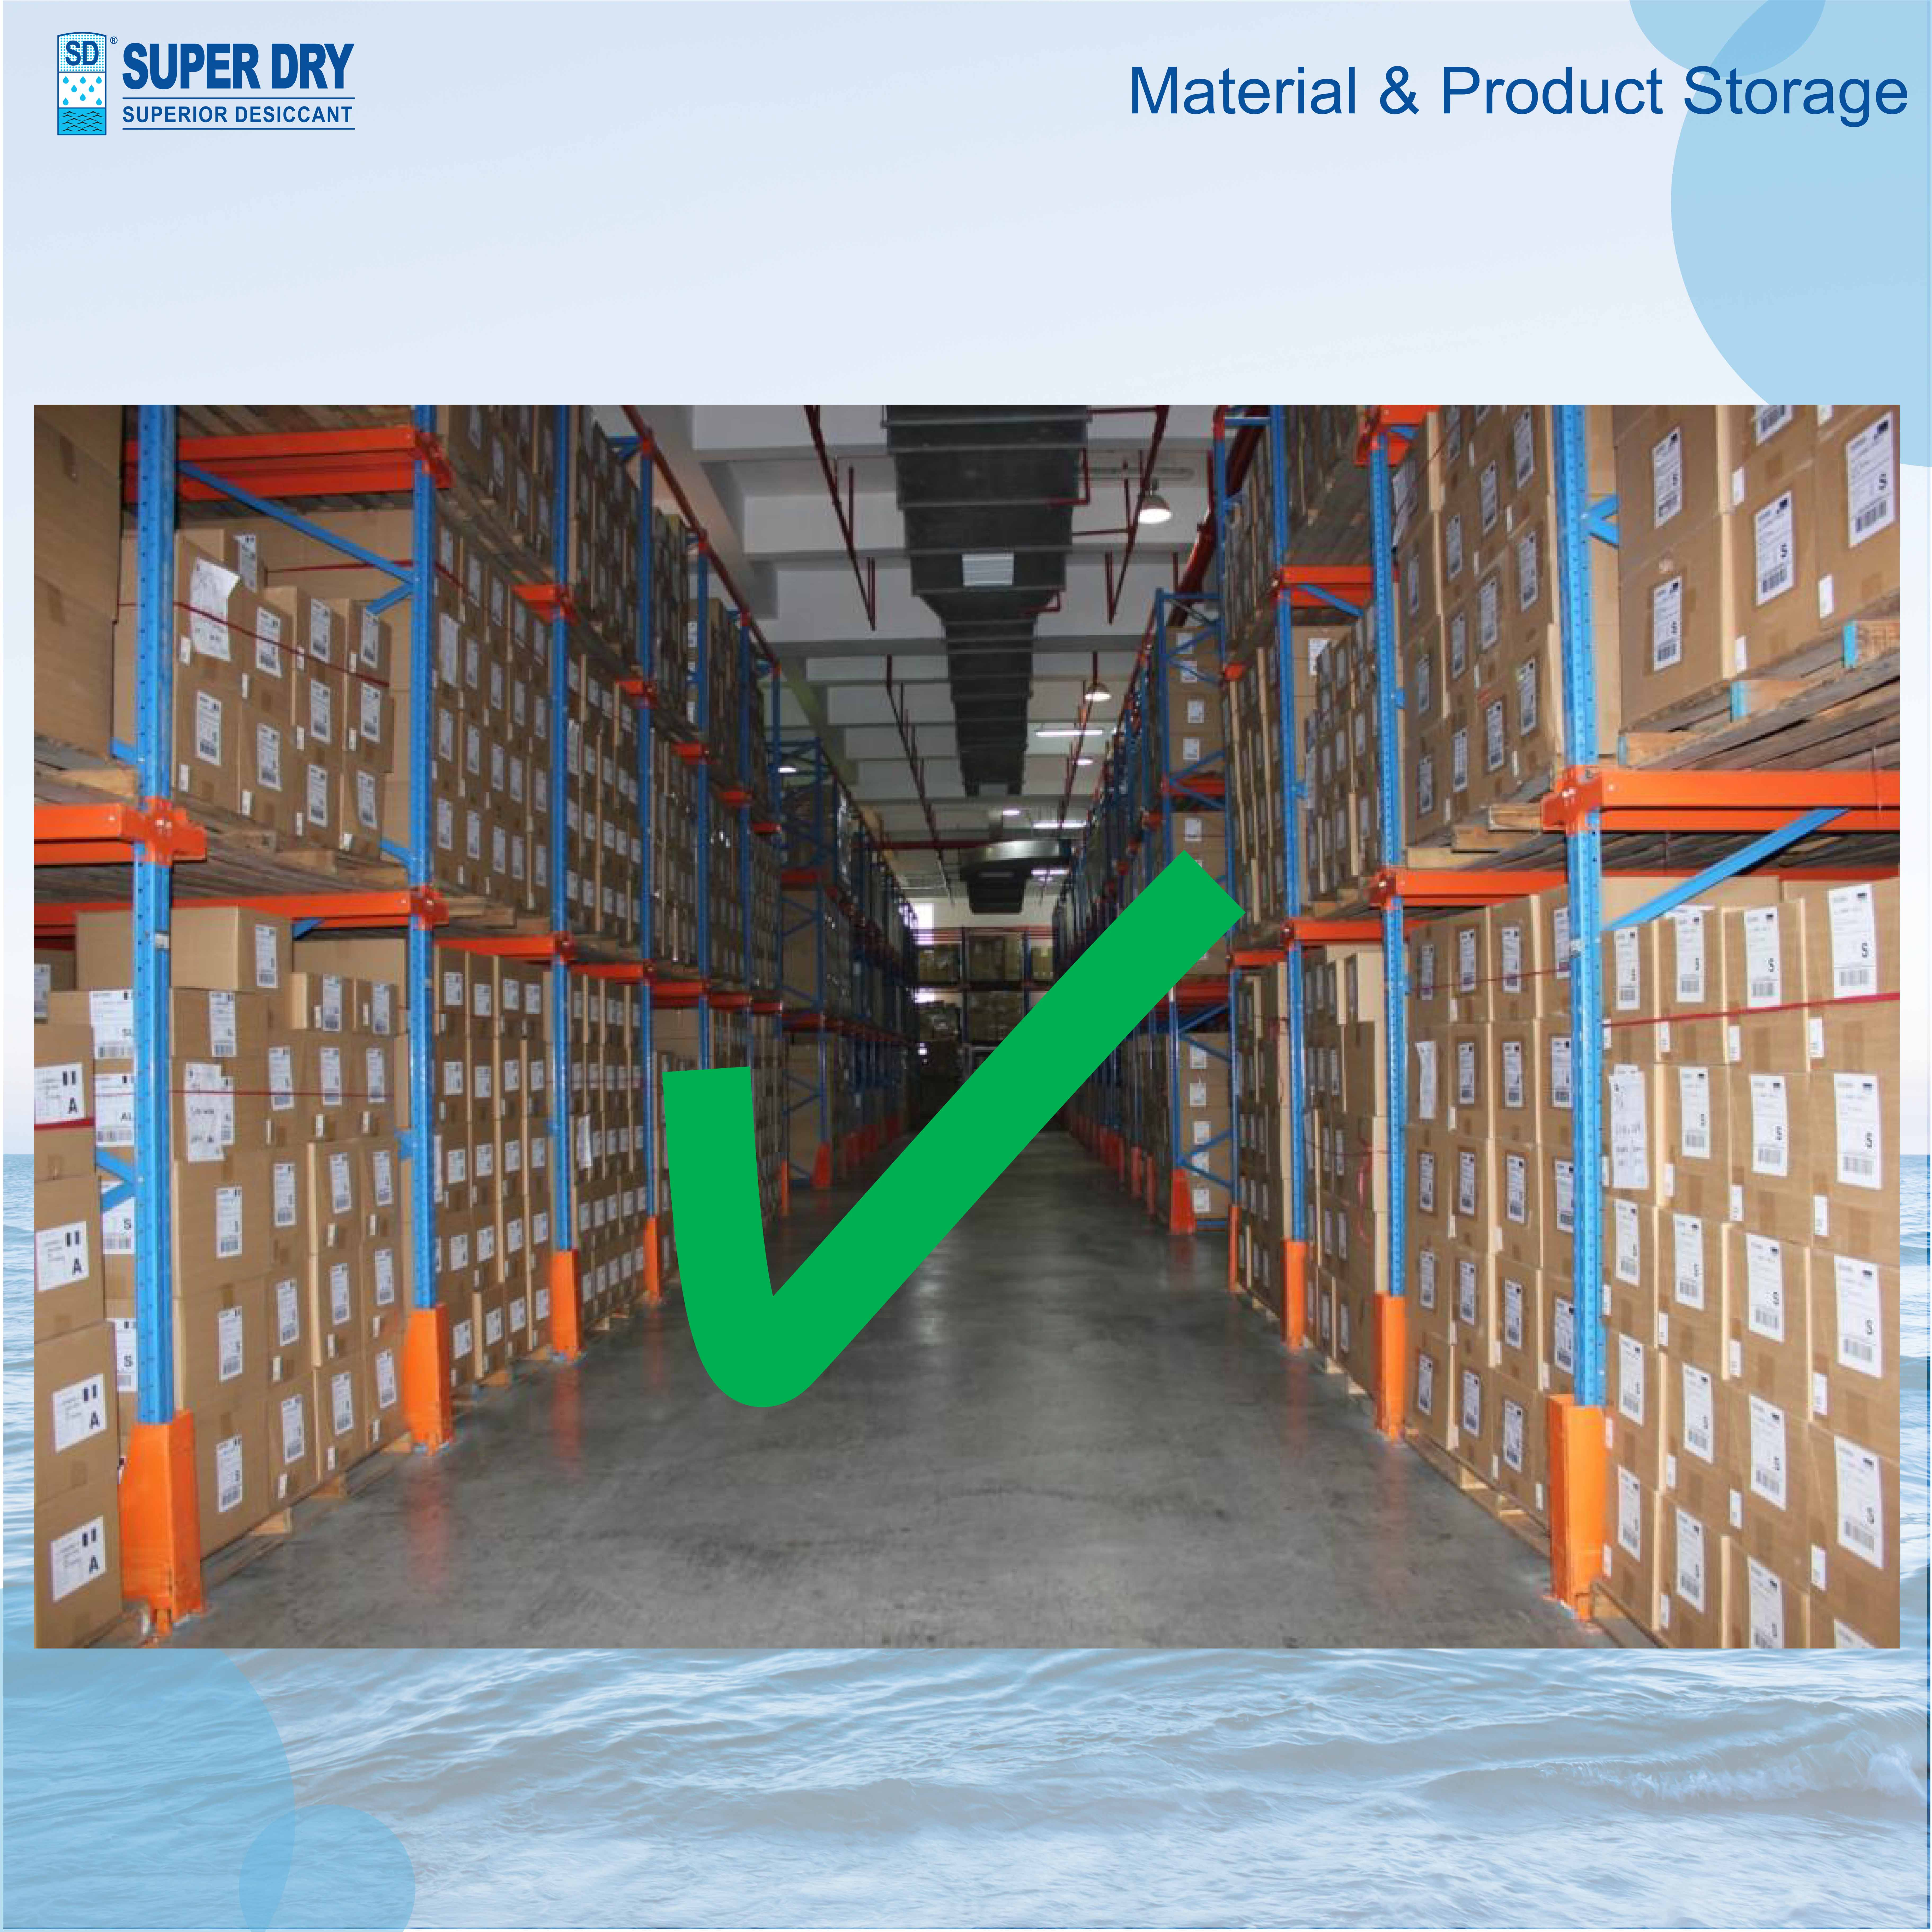 #Material & Product Storage II